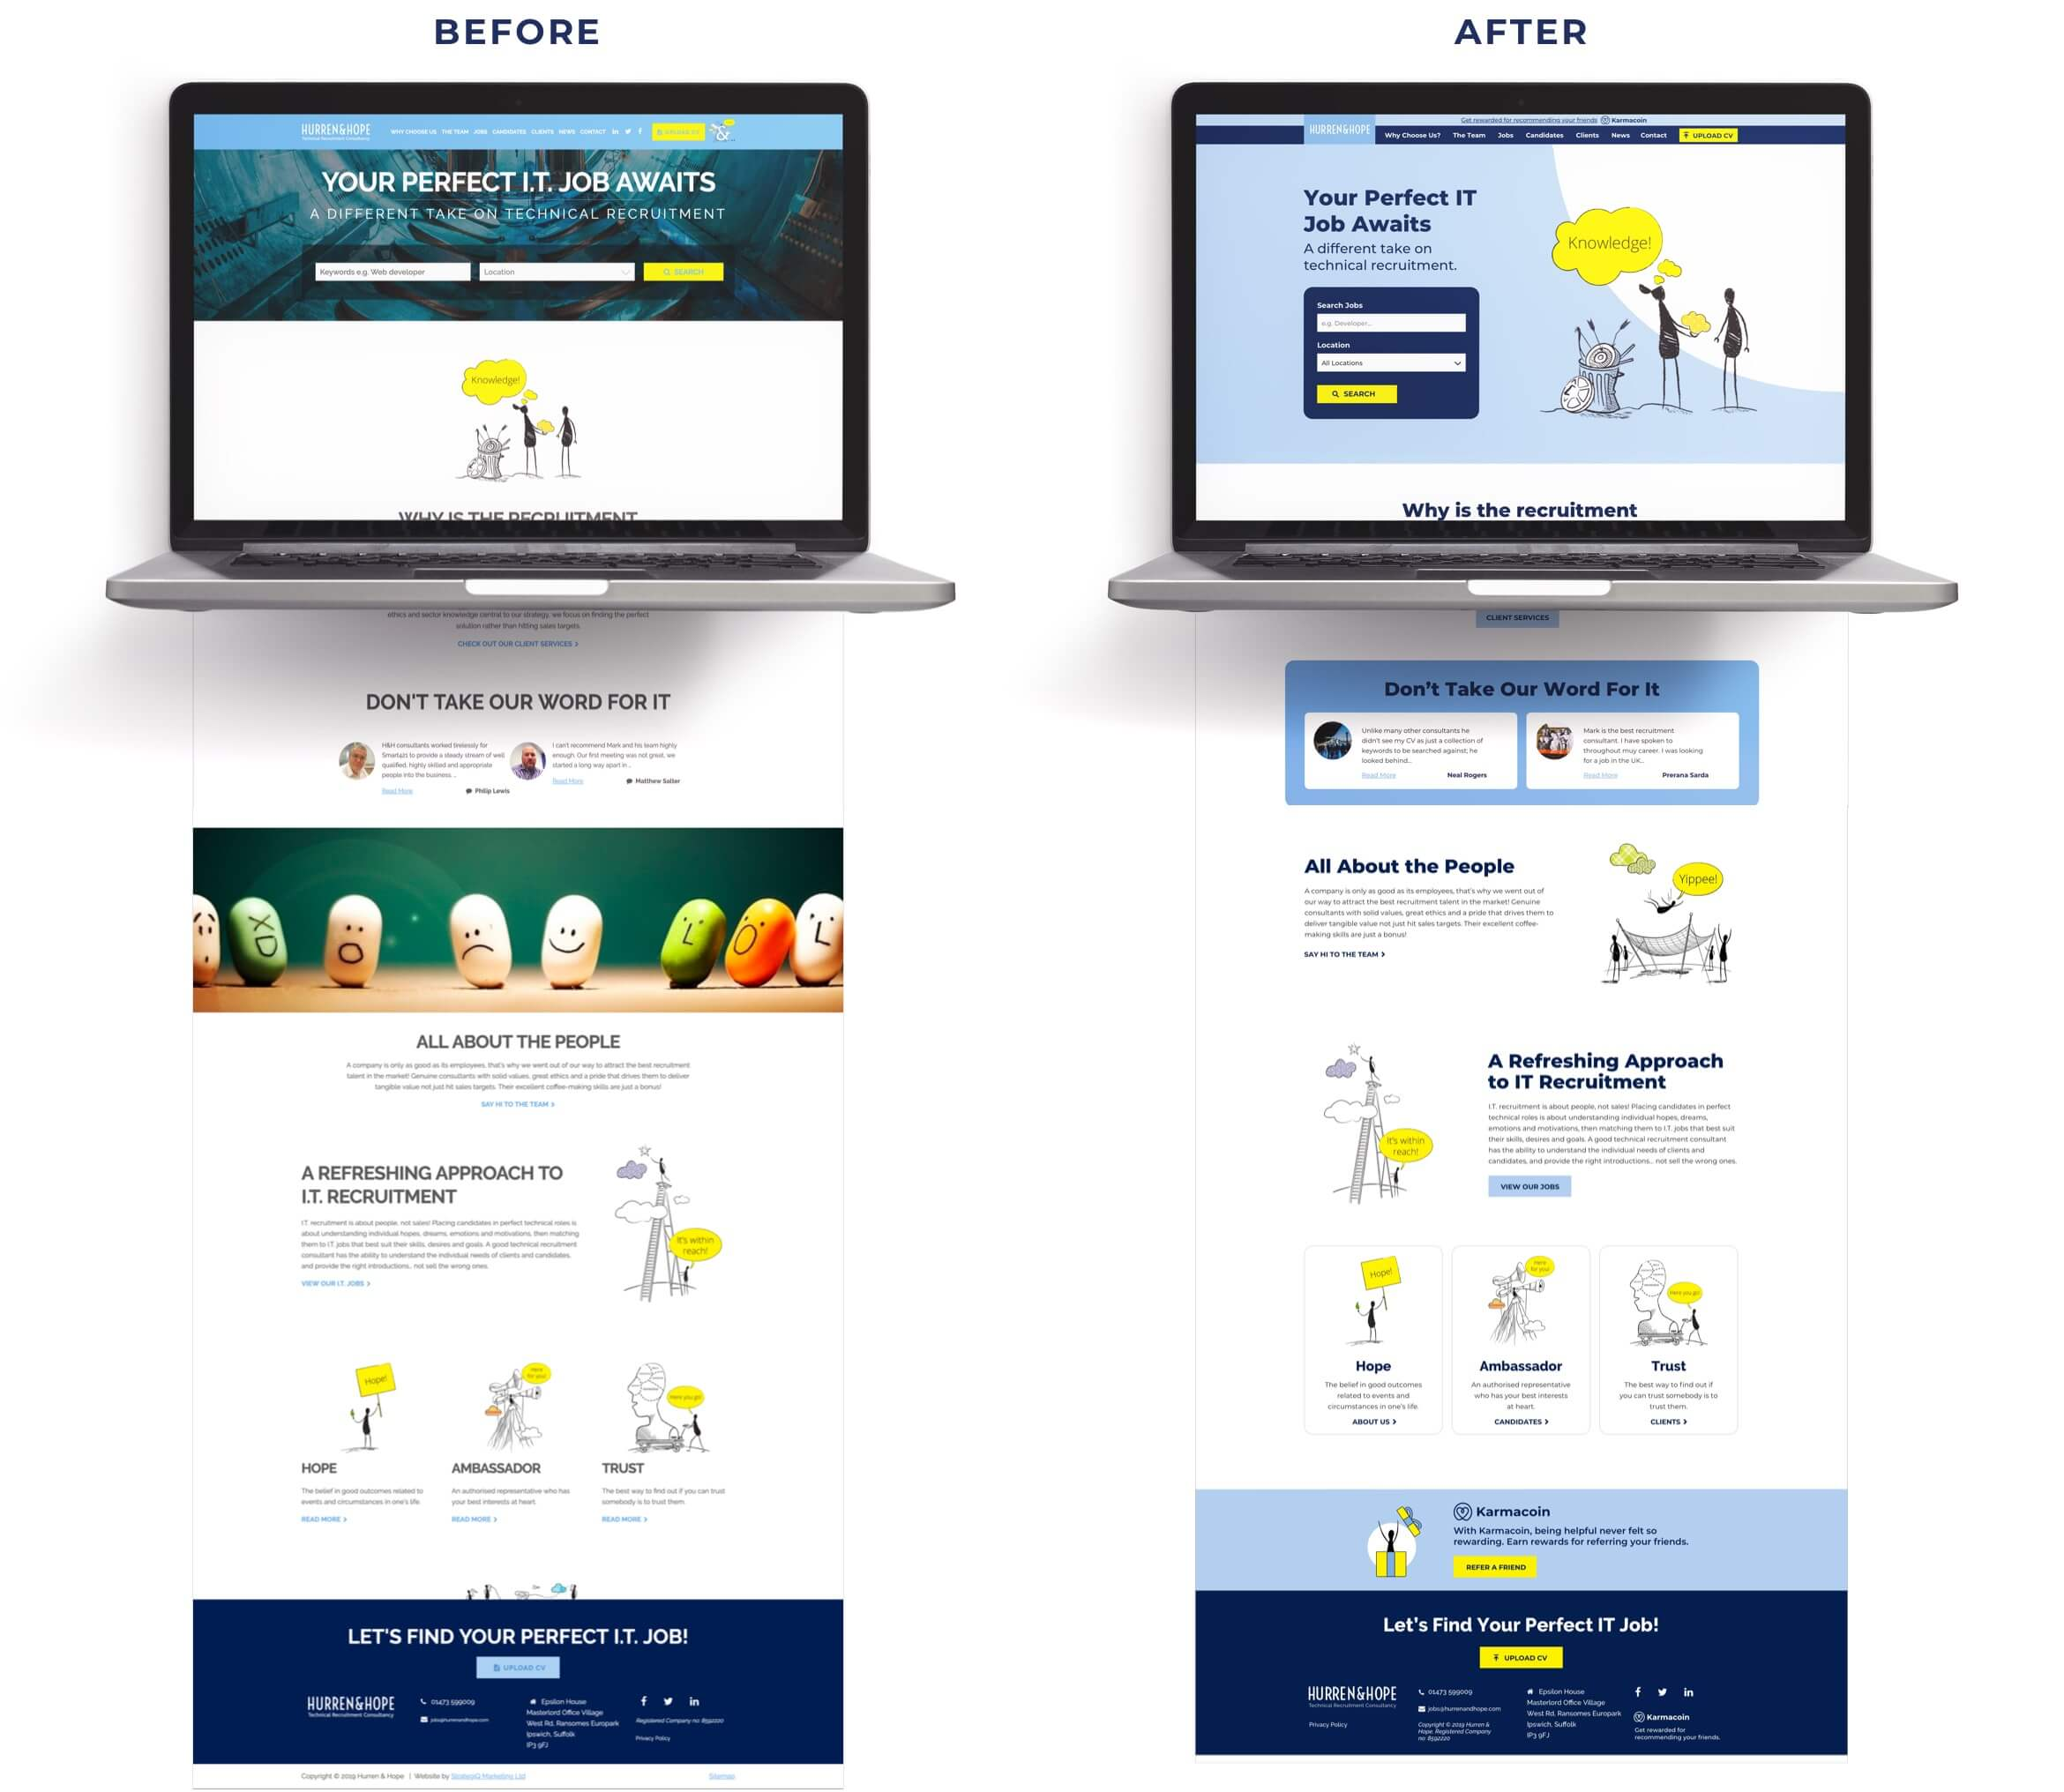 H&H website before and after